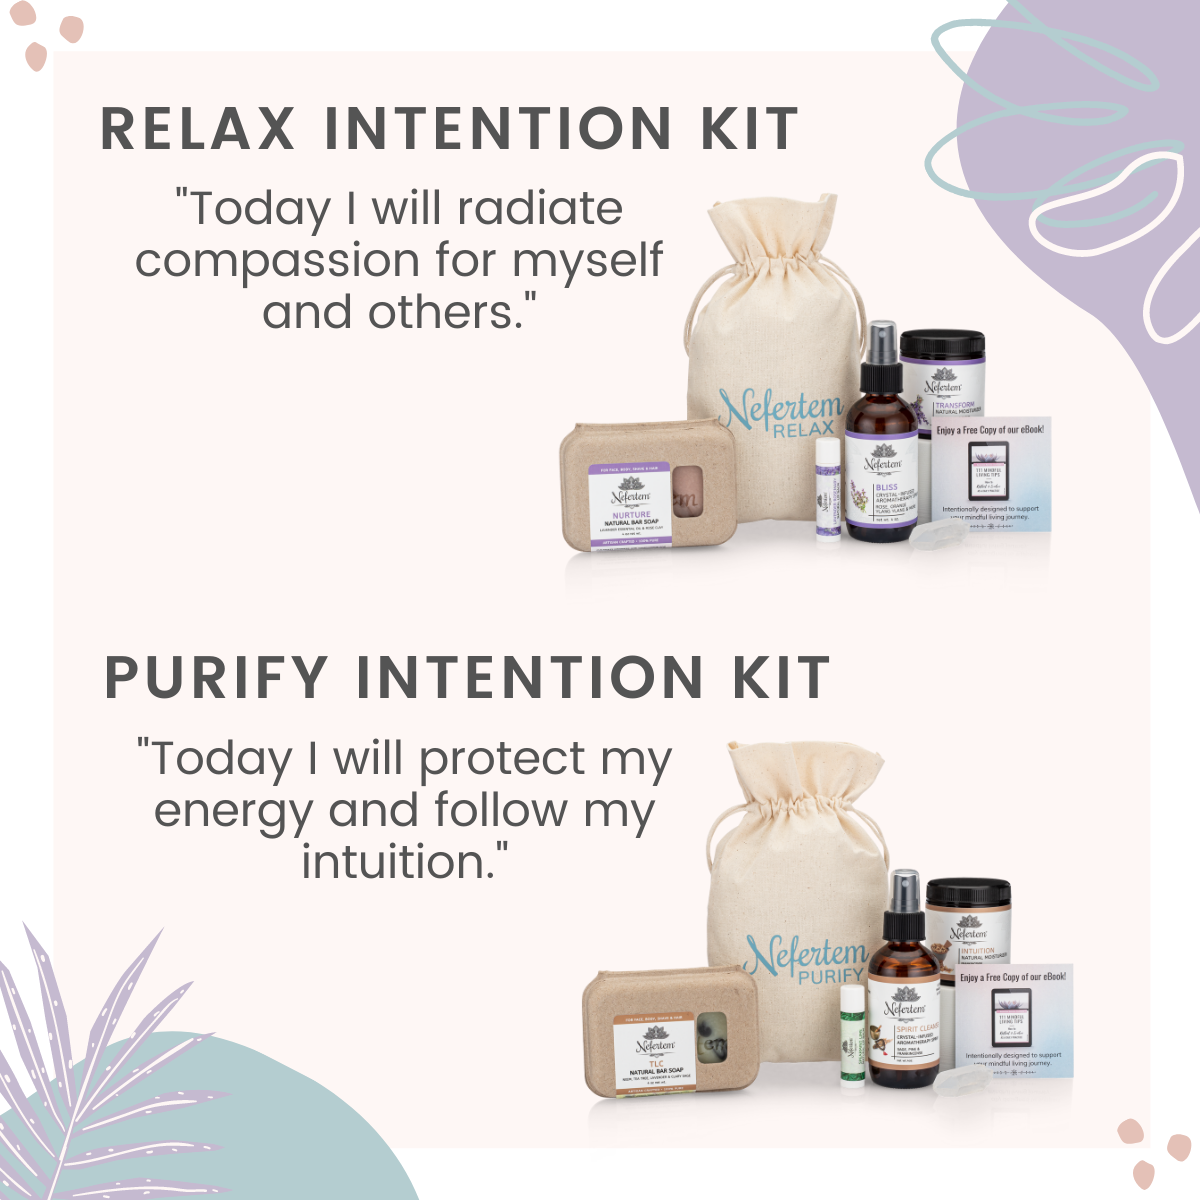 relax intention kit image with decoration